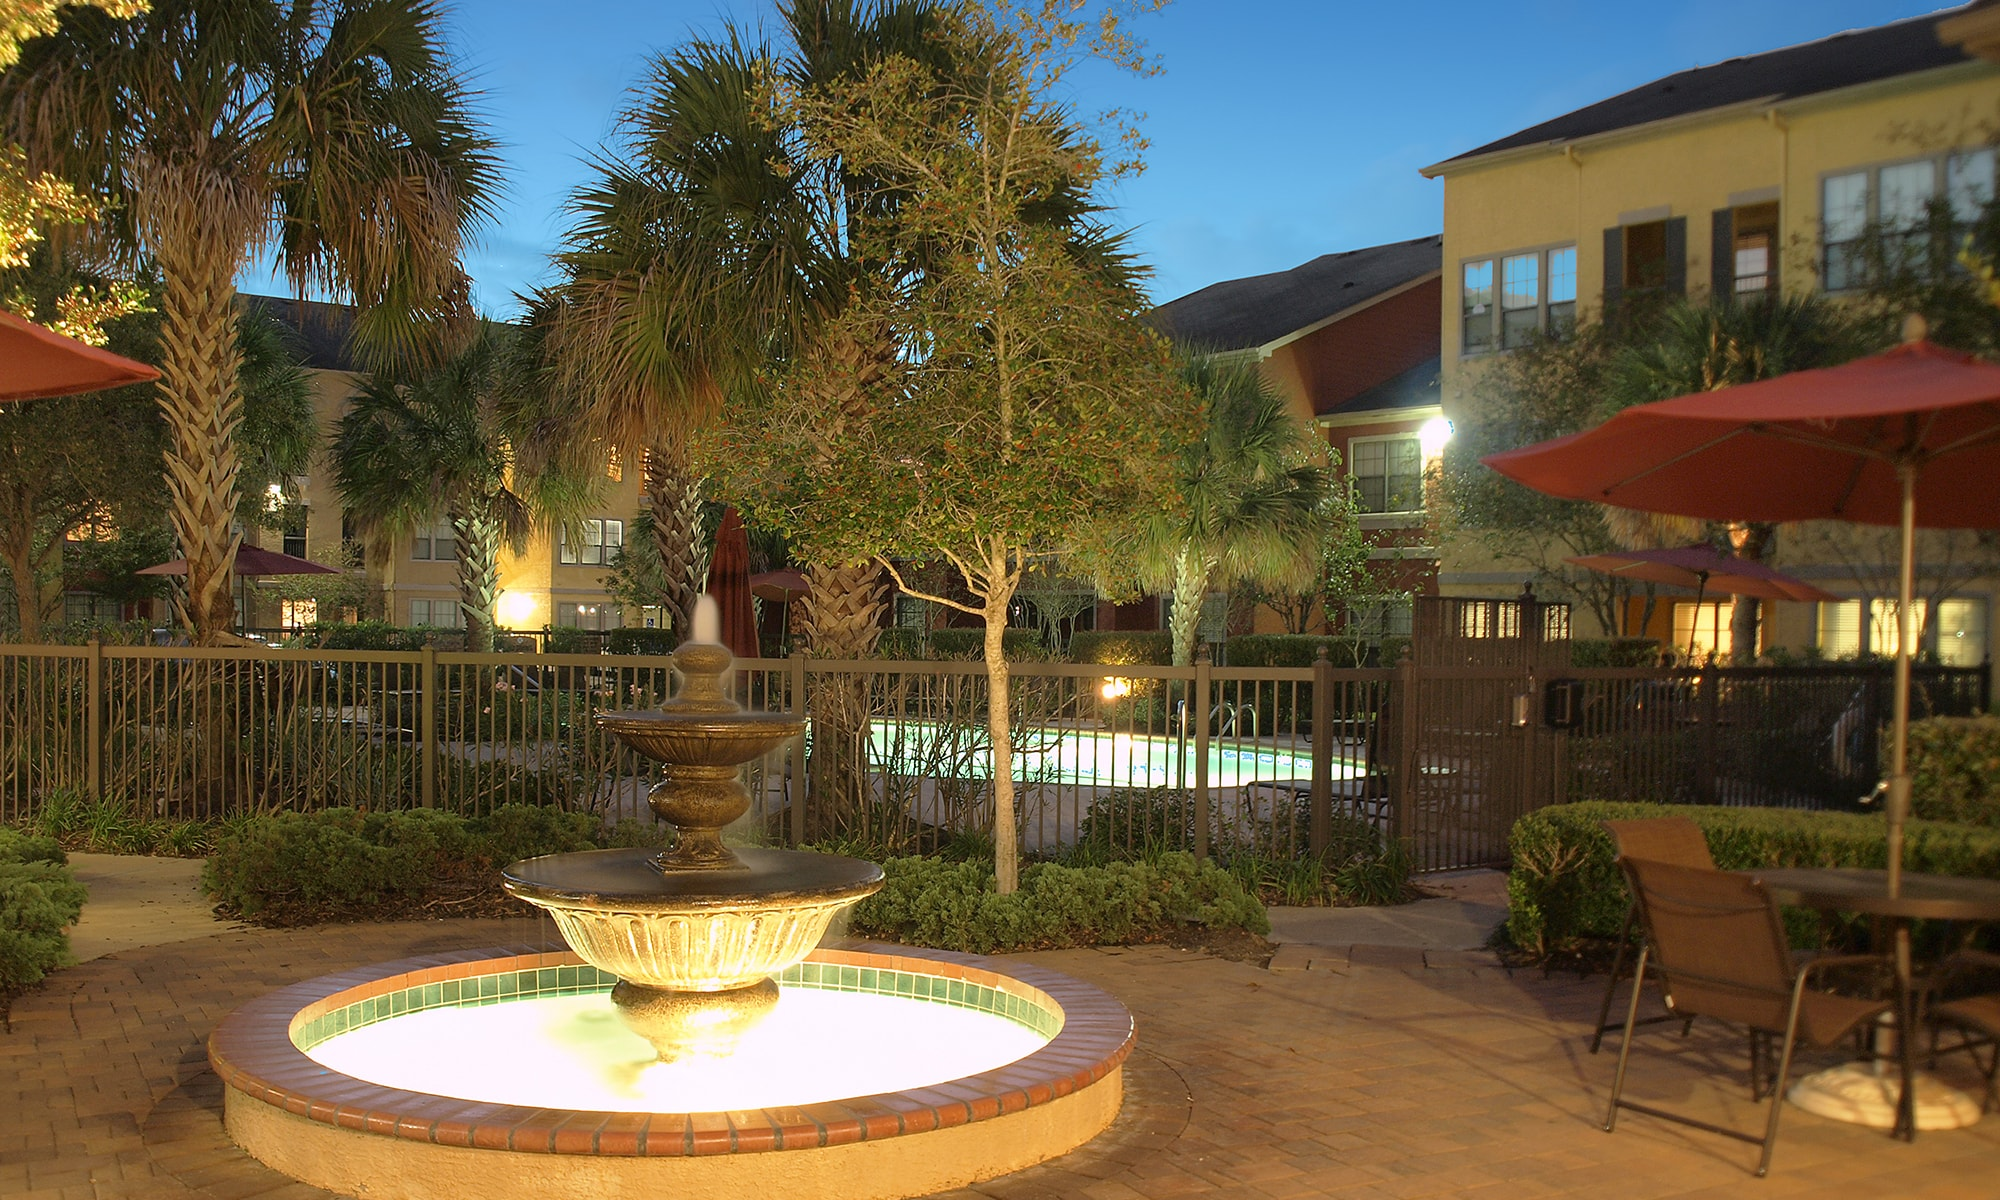 4 bedroom apartments pearland texas - Unique Space For Your Extraordinary Life